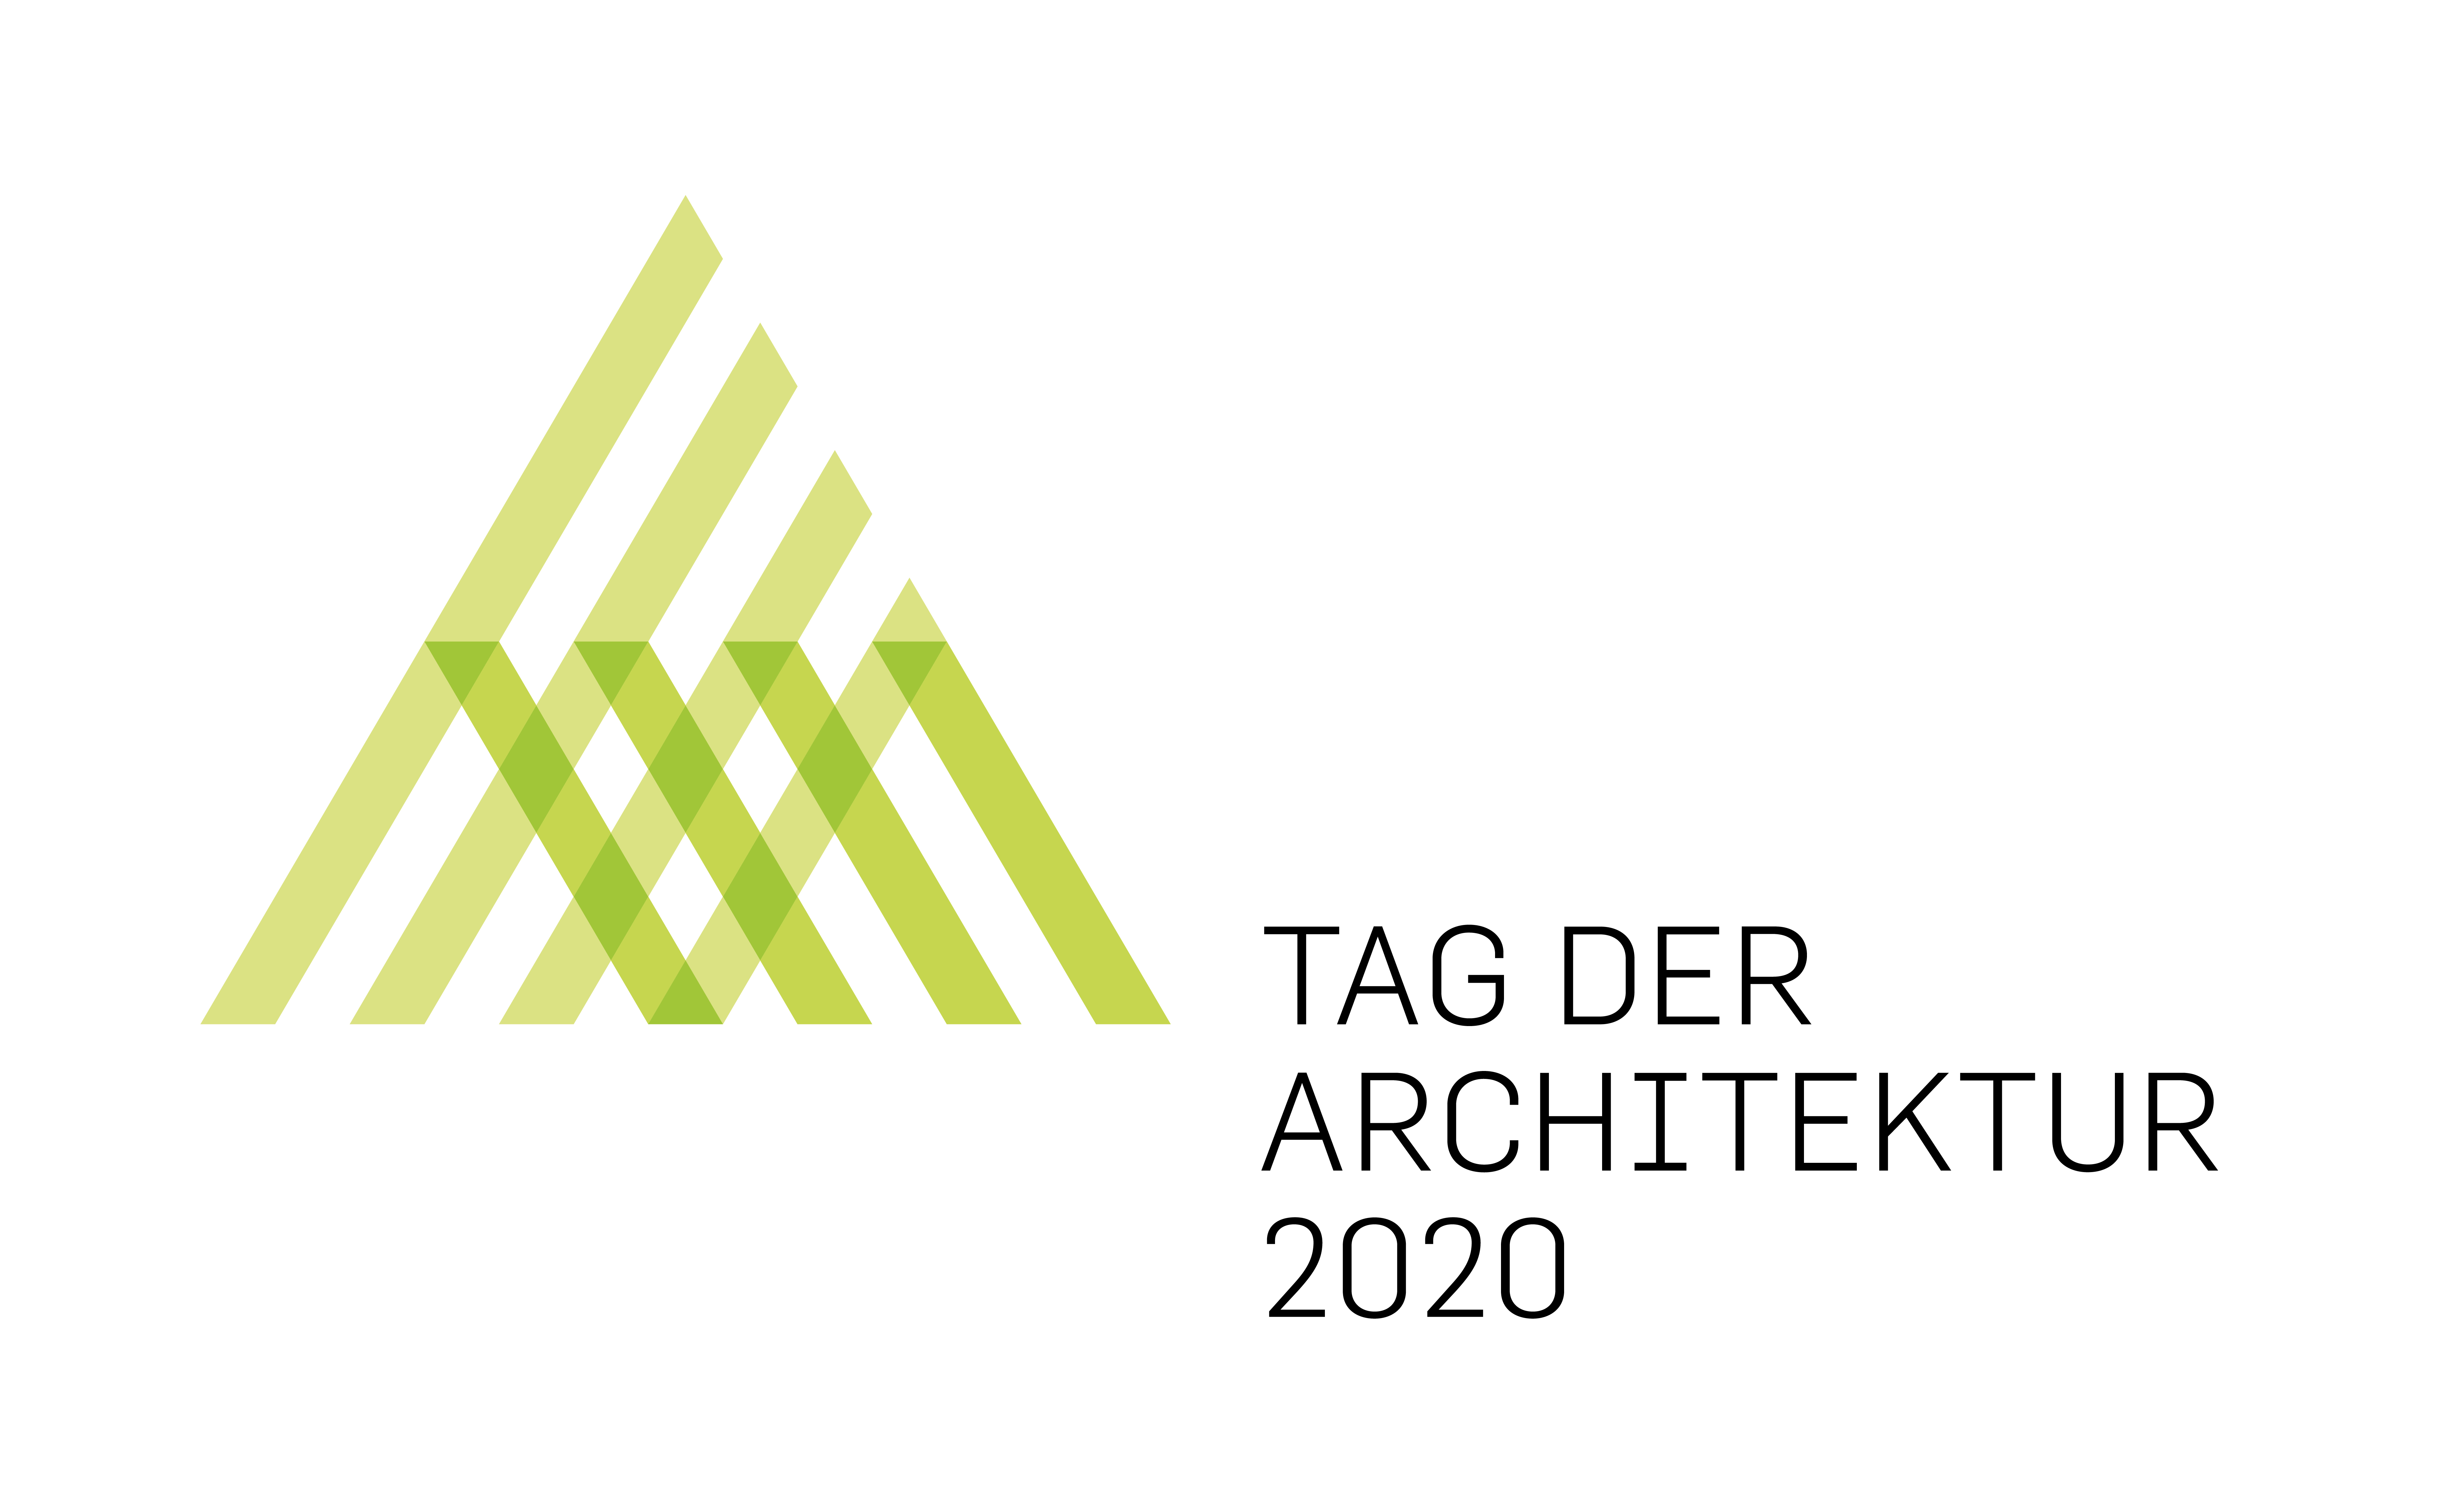 Tag der Architektur 2020